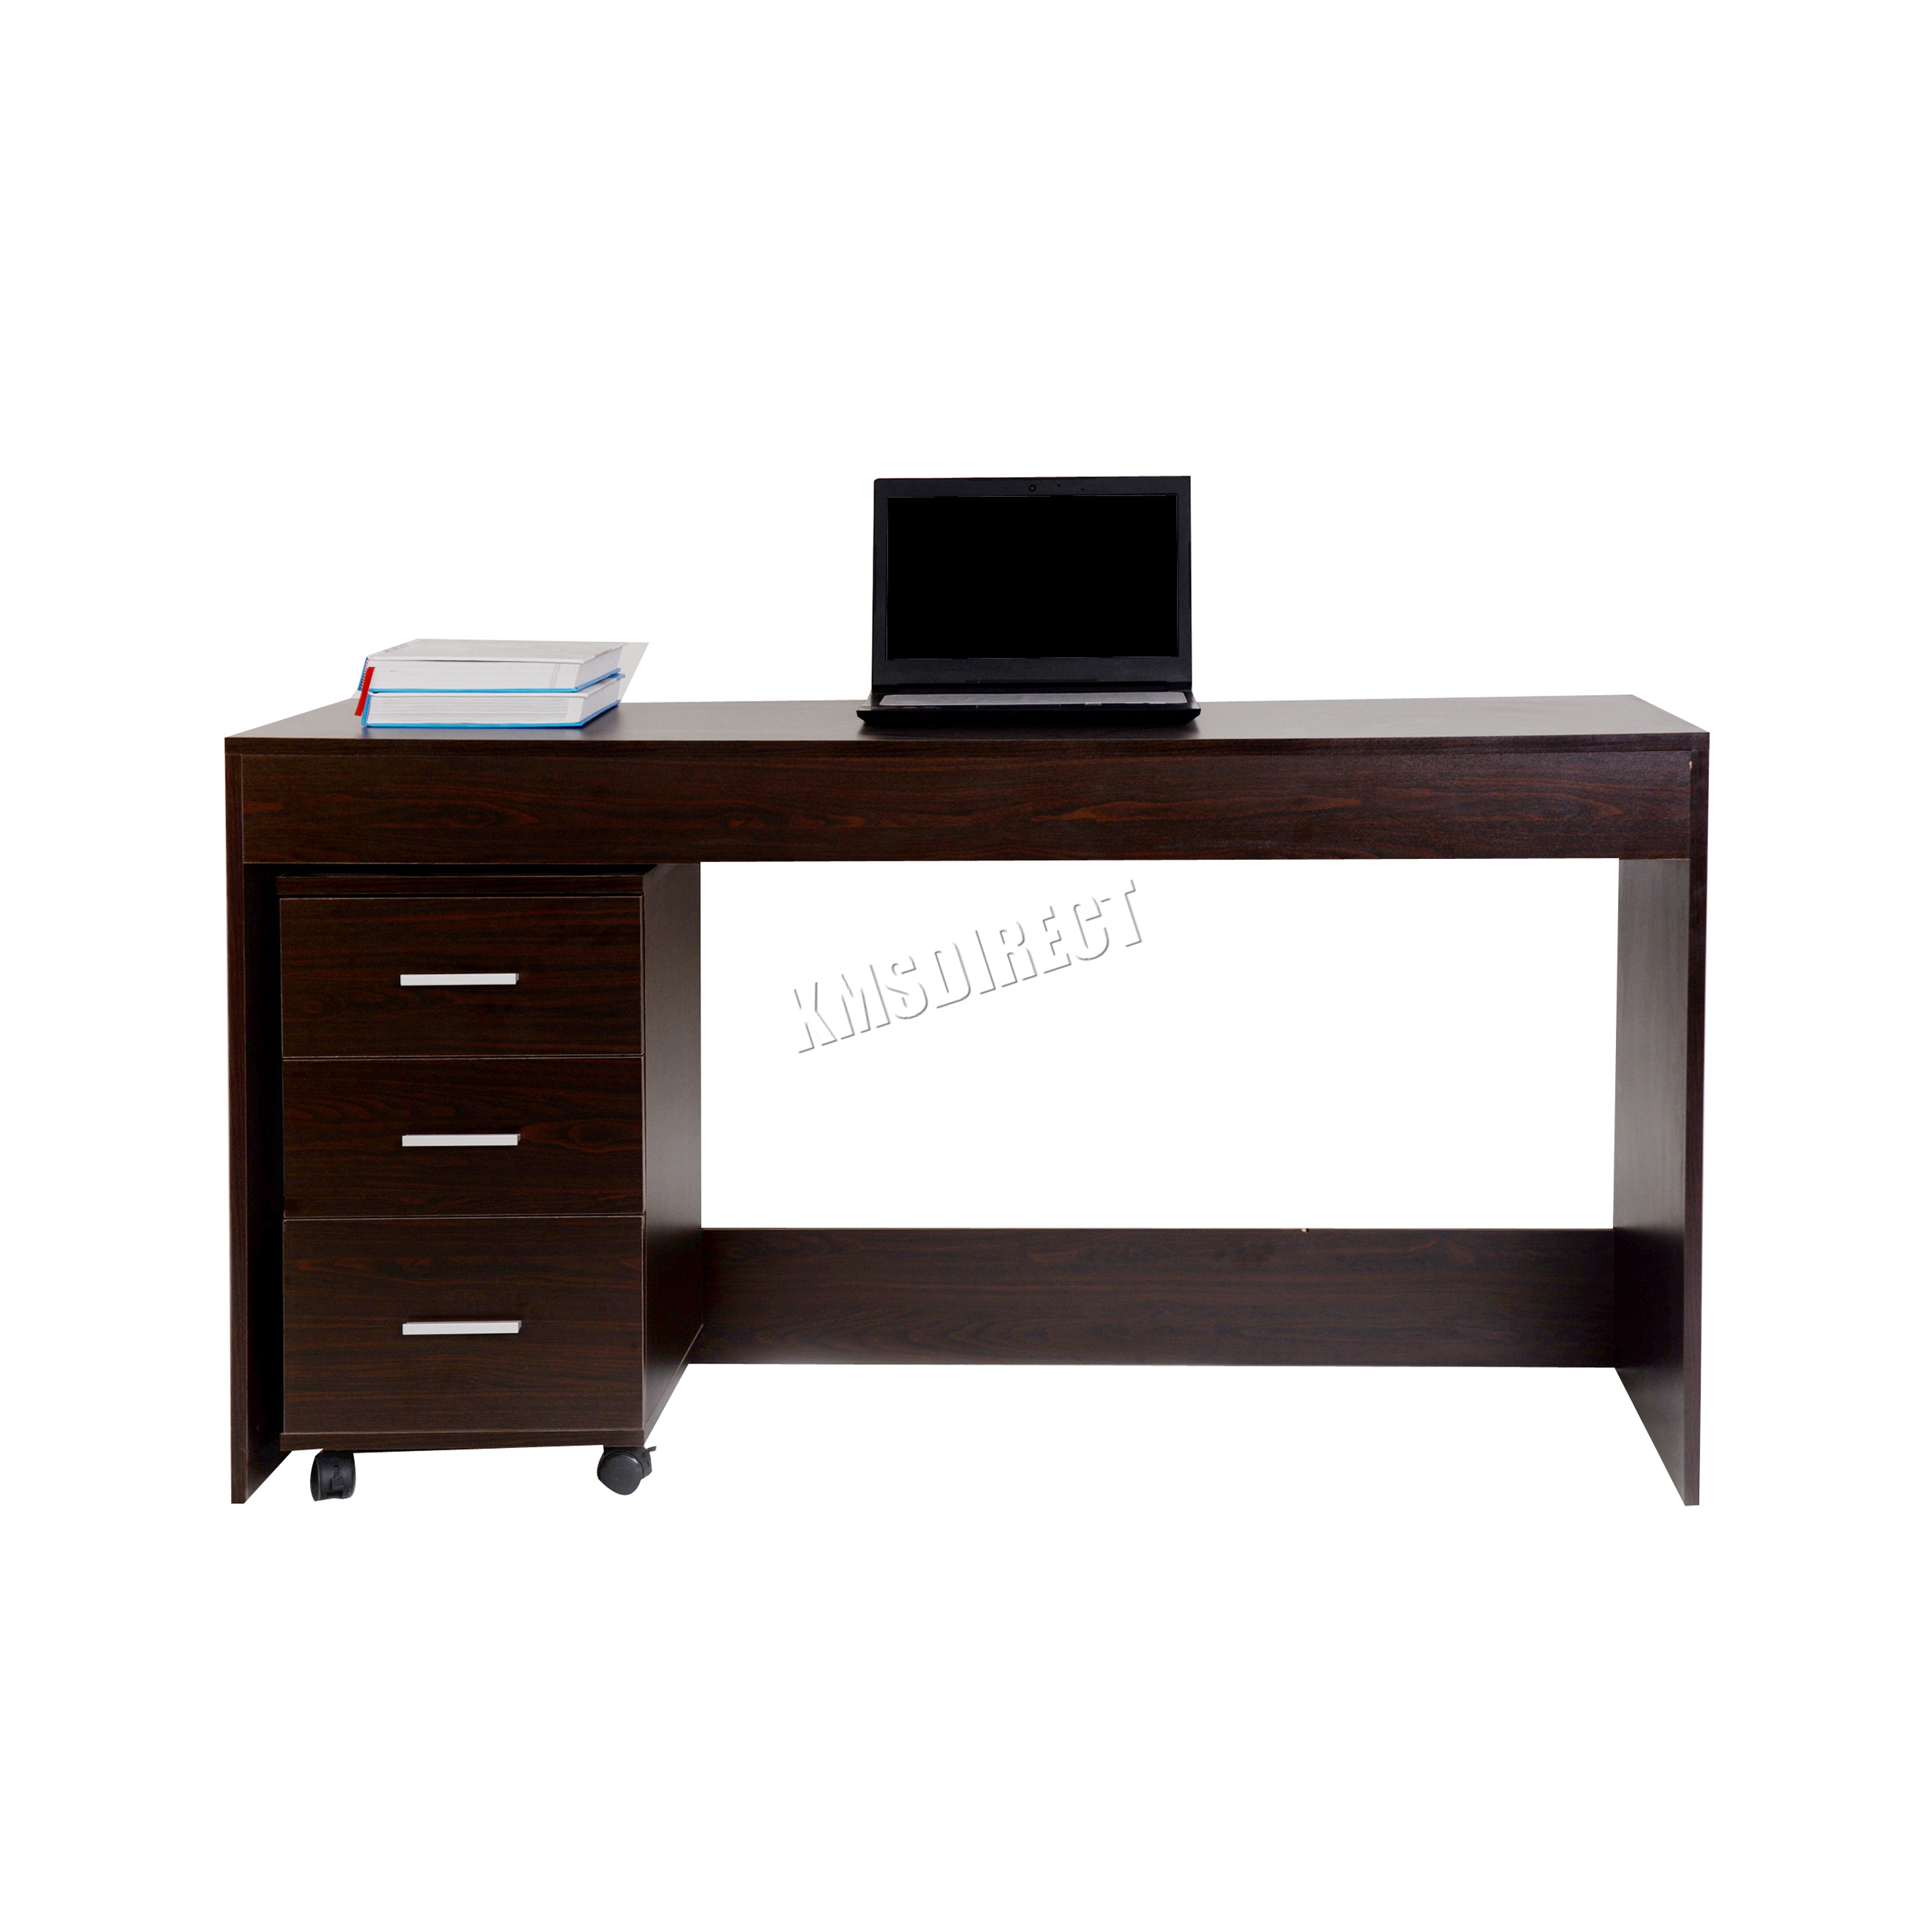 Westwood Computer Desk Pc Table With 3 Drawers Home Office Furniture Study Cd09 Ebay